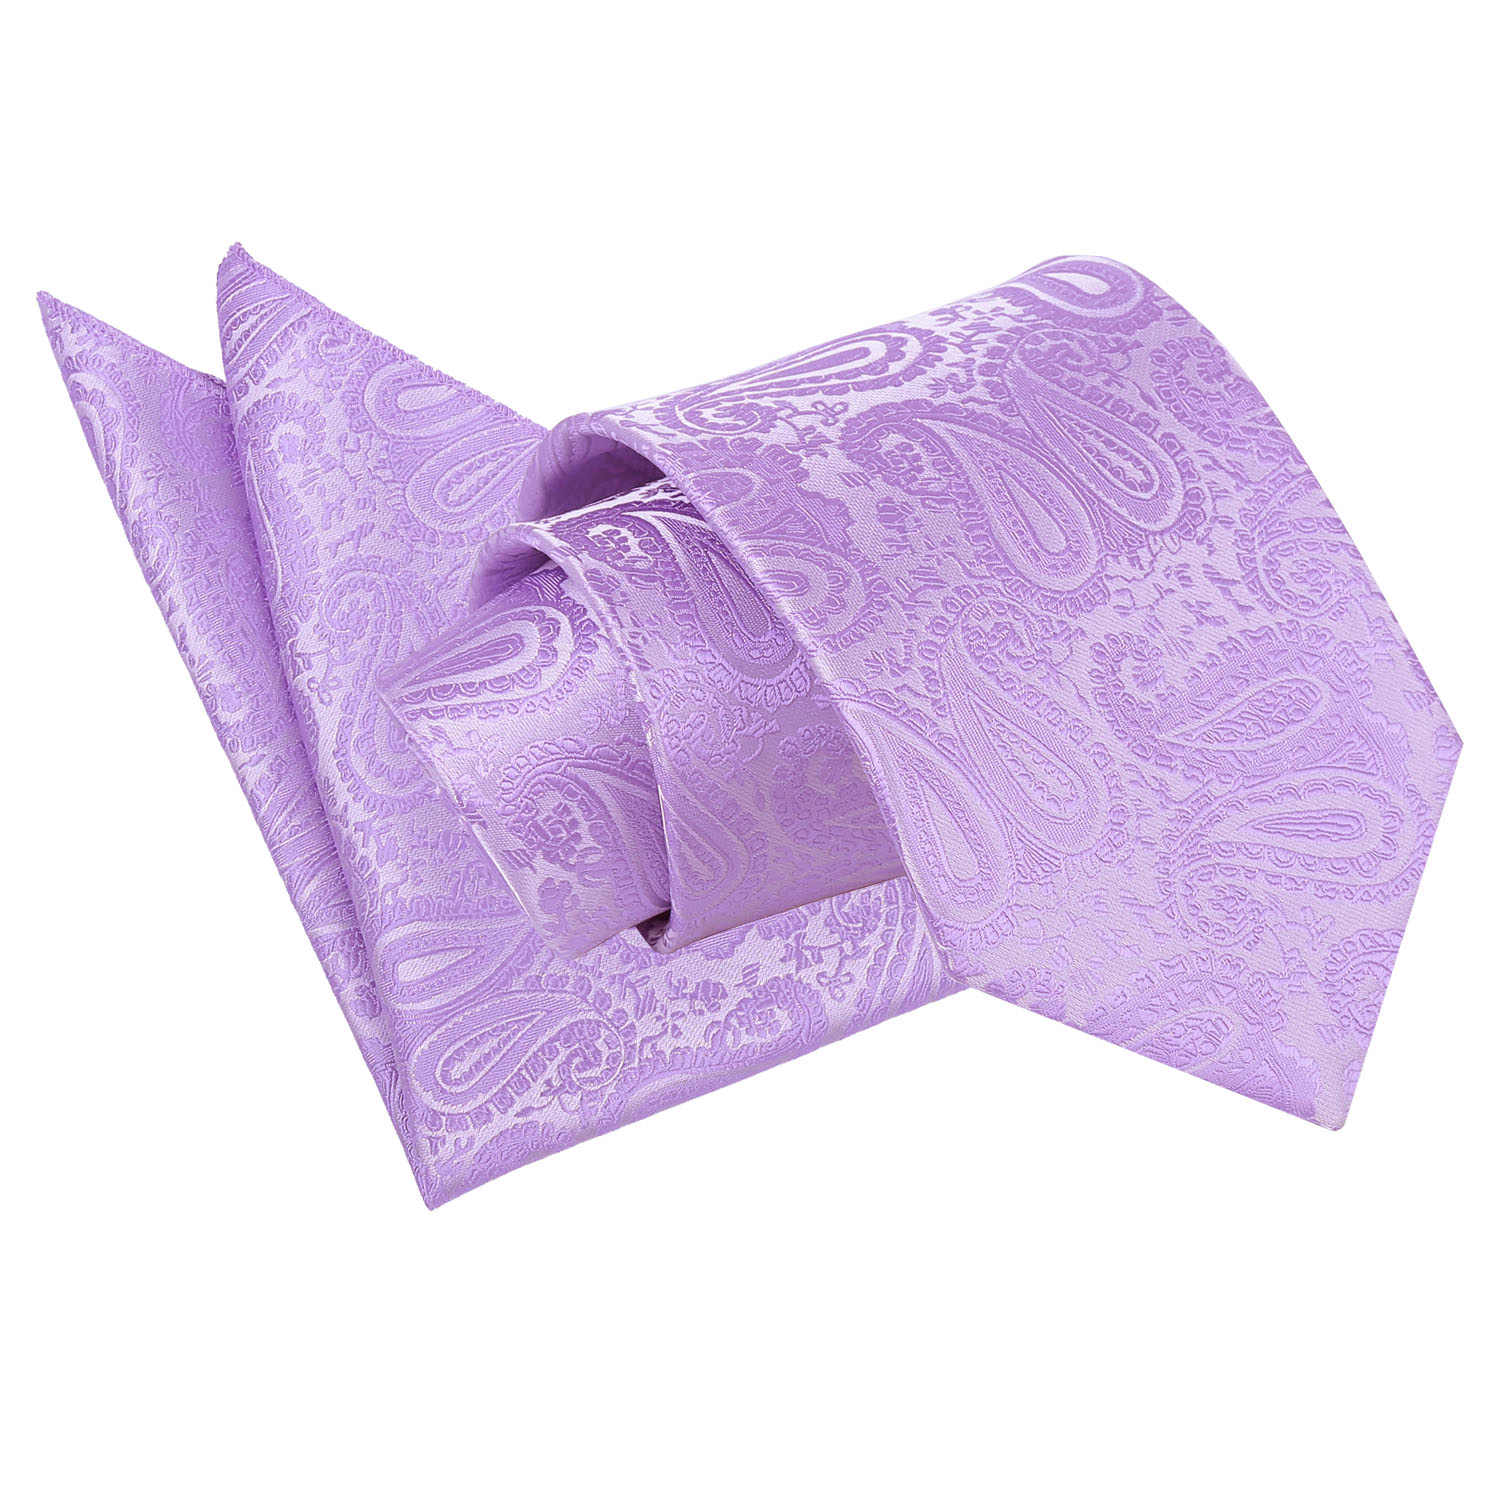 1d99d04ae606 Lilac Paisley Tie & Pocket Square Set